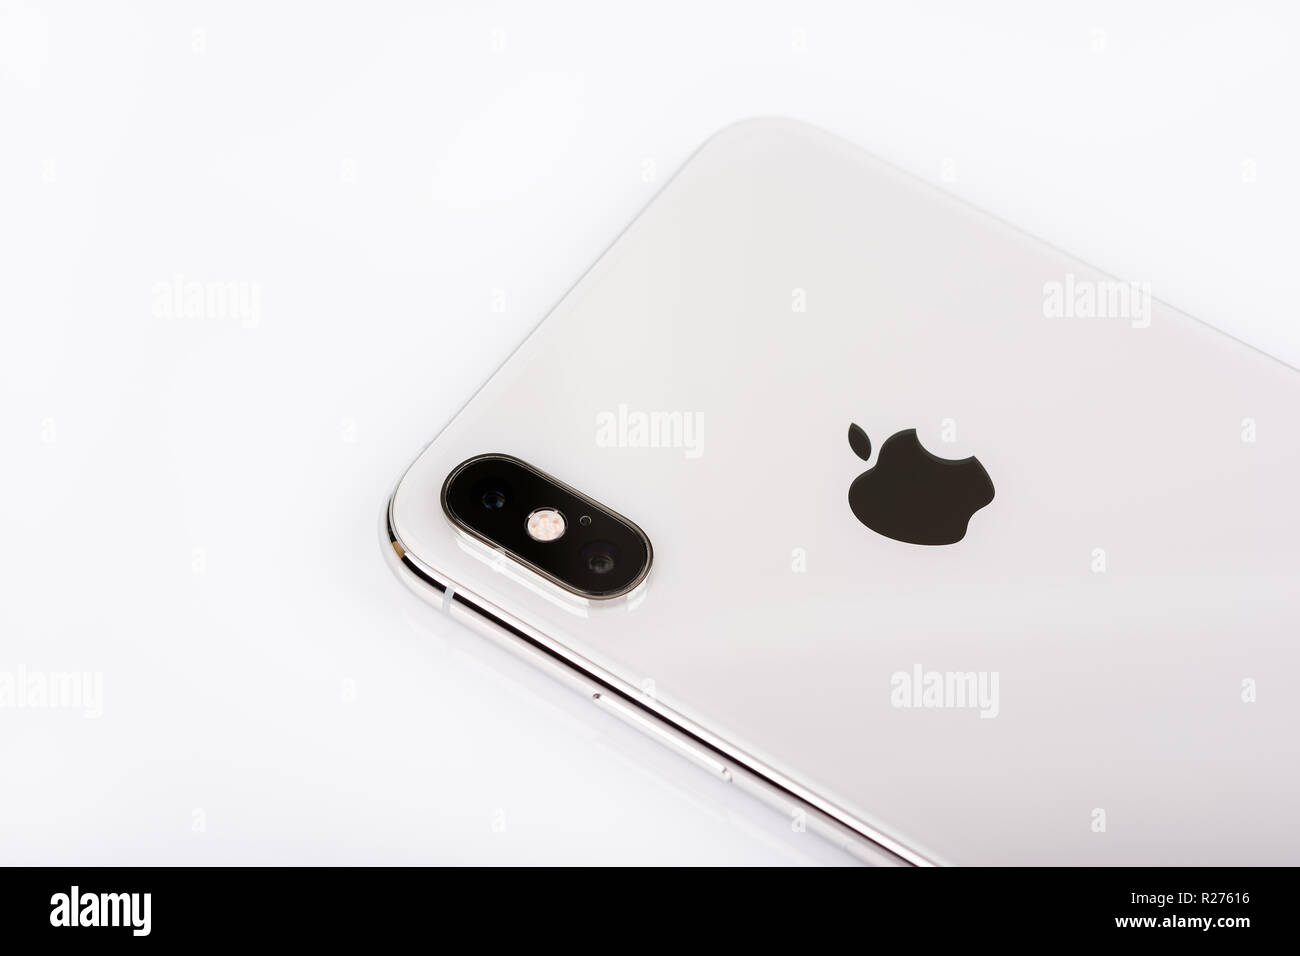 BURGAS, BULGARIA - NOVEMBER 8, 2018: Apple iPhone Xs Max Silver on white background, back view. - Stock Image